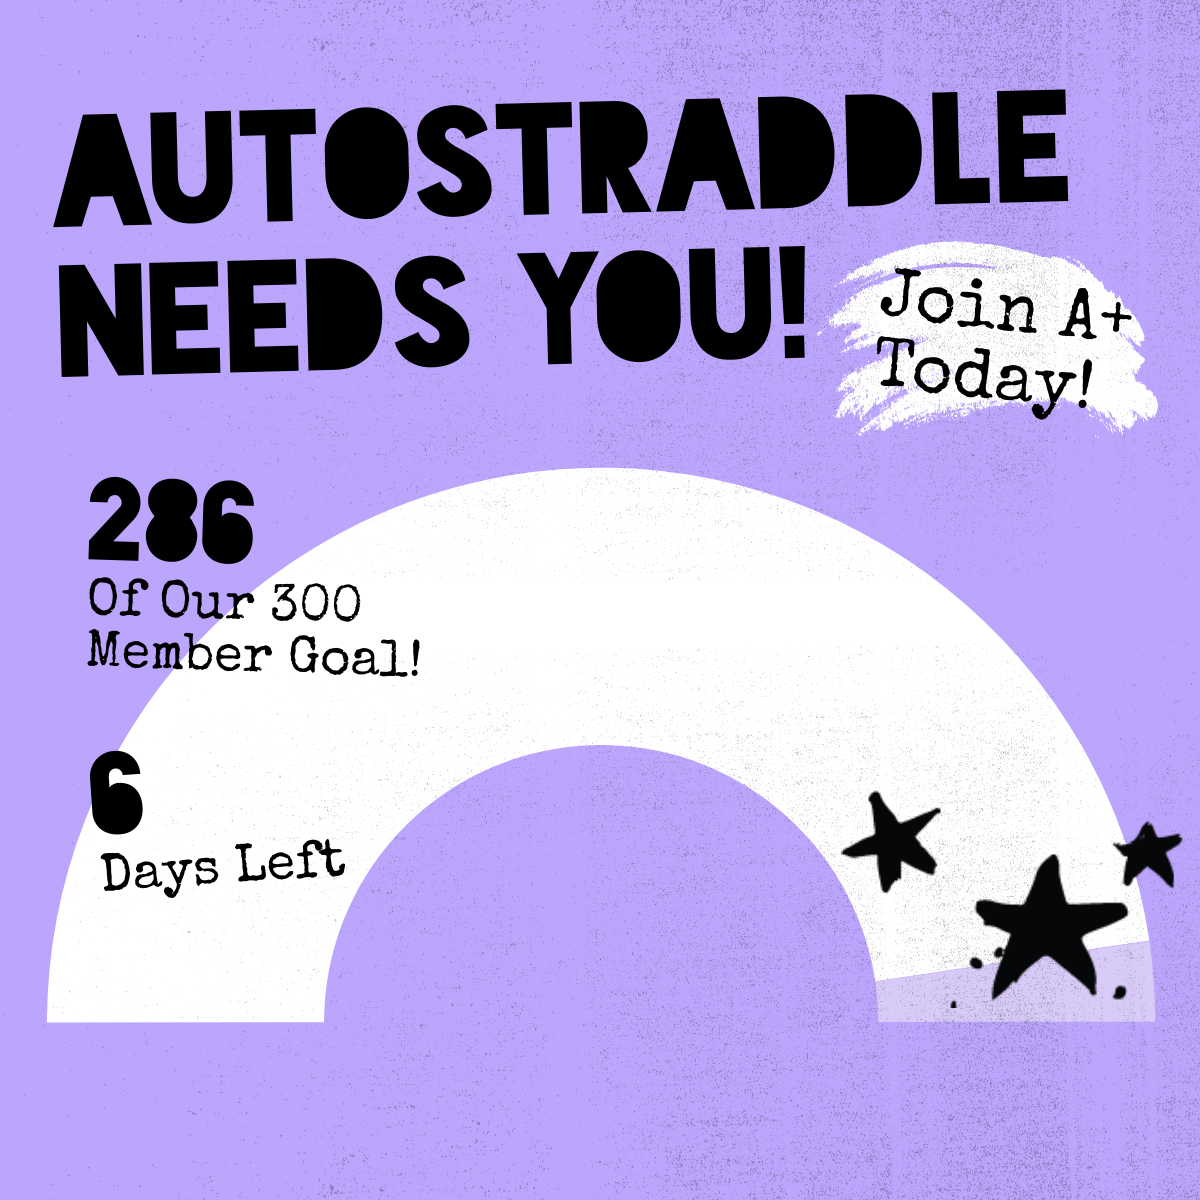 Autostraddle Needs You! Join A+ Today! 286 of our 300 Member Goal! 6 Days Left